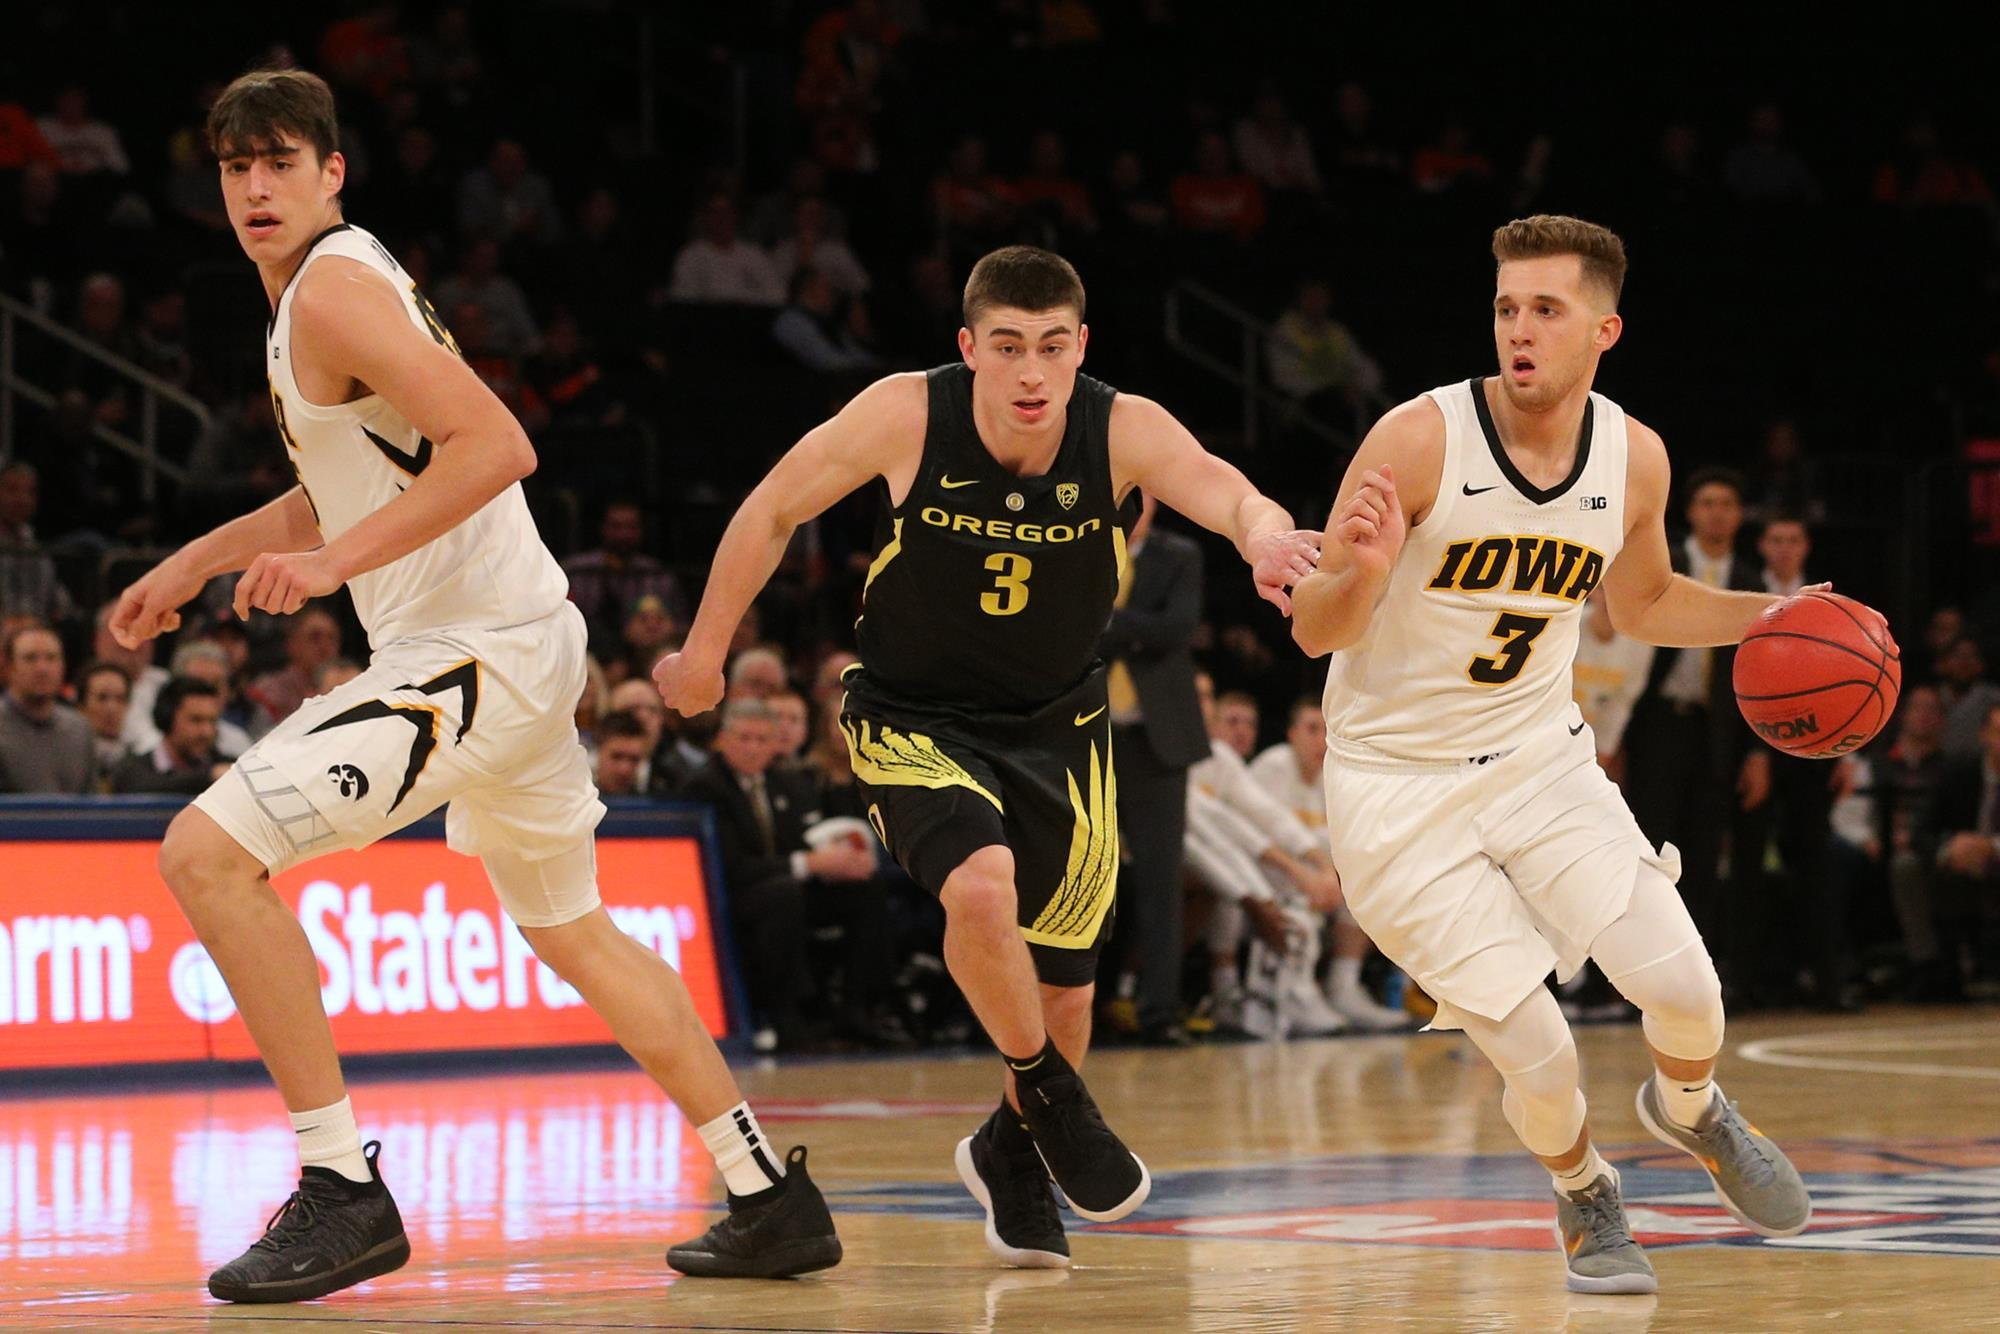 ducks can't hold on in new york - university of oregon athletics